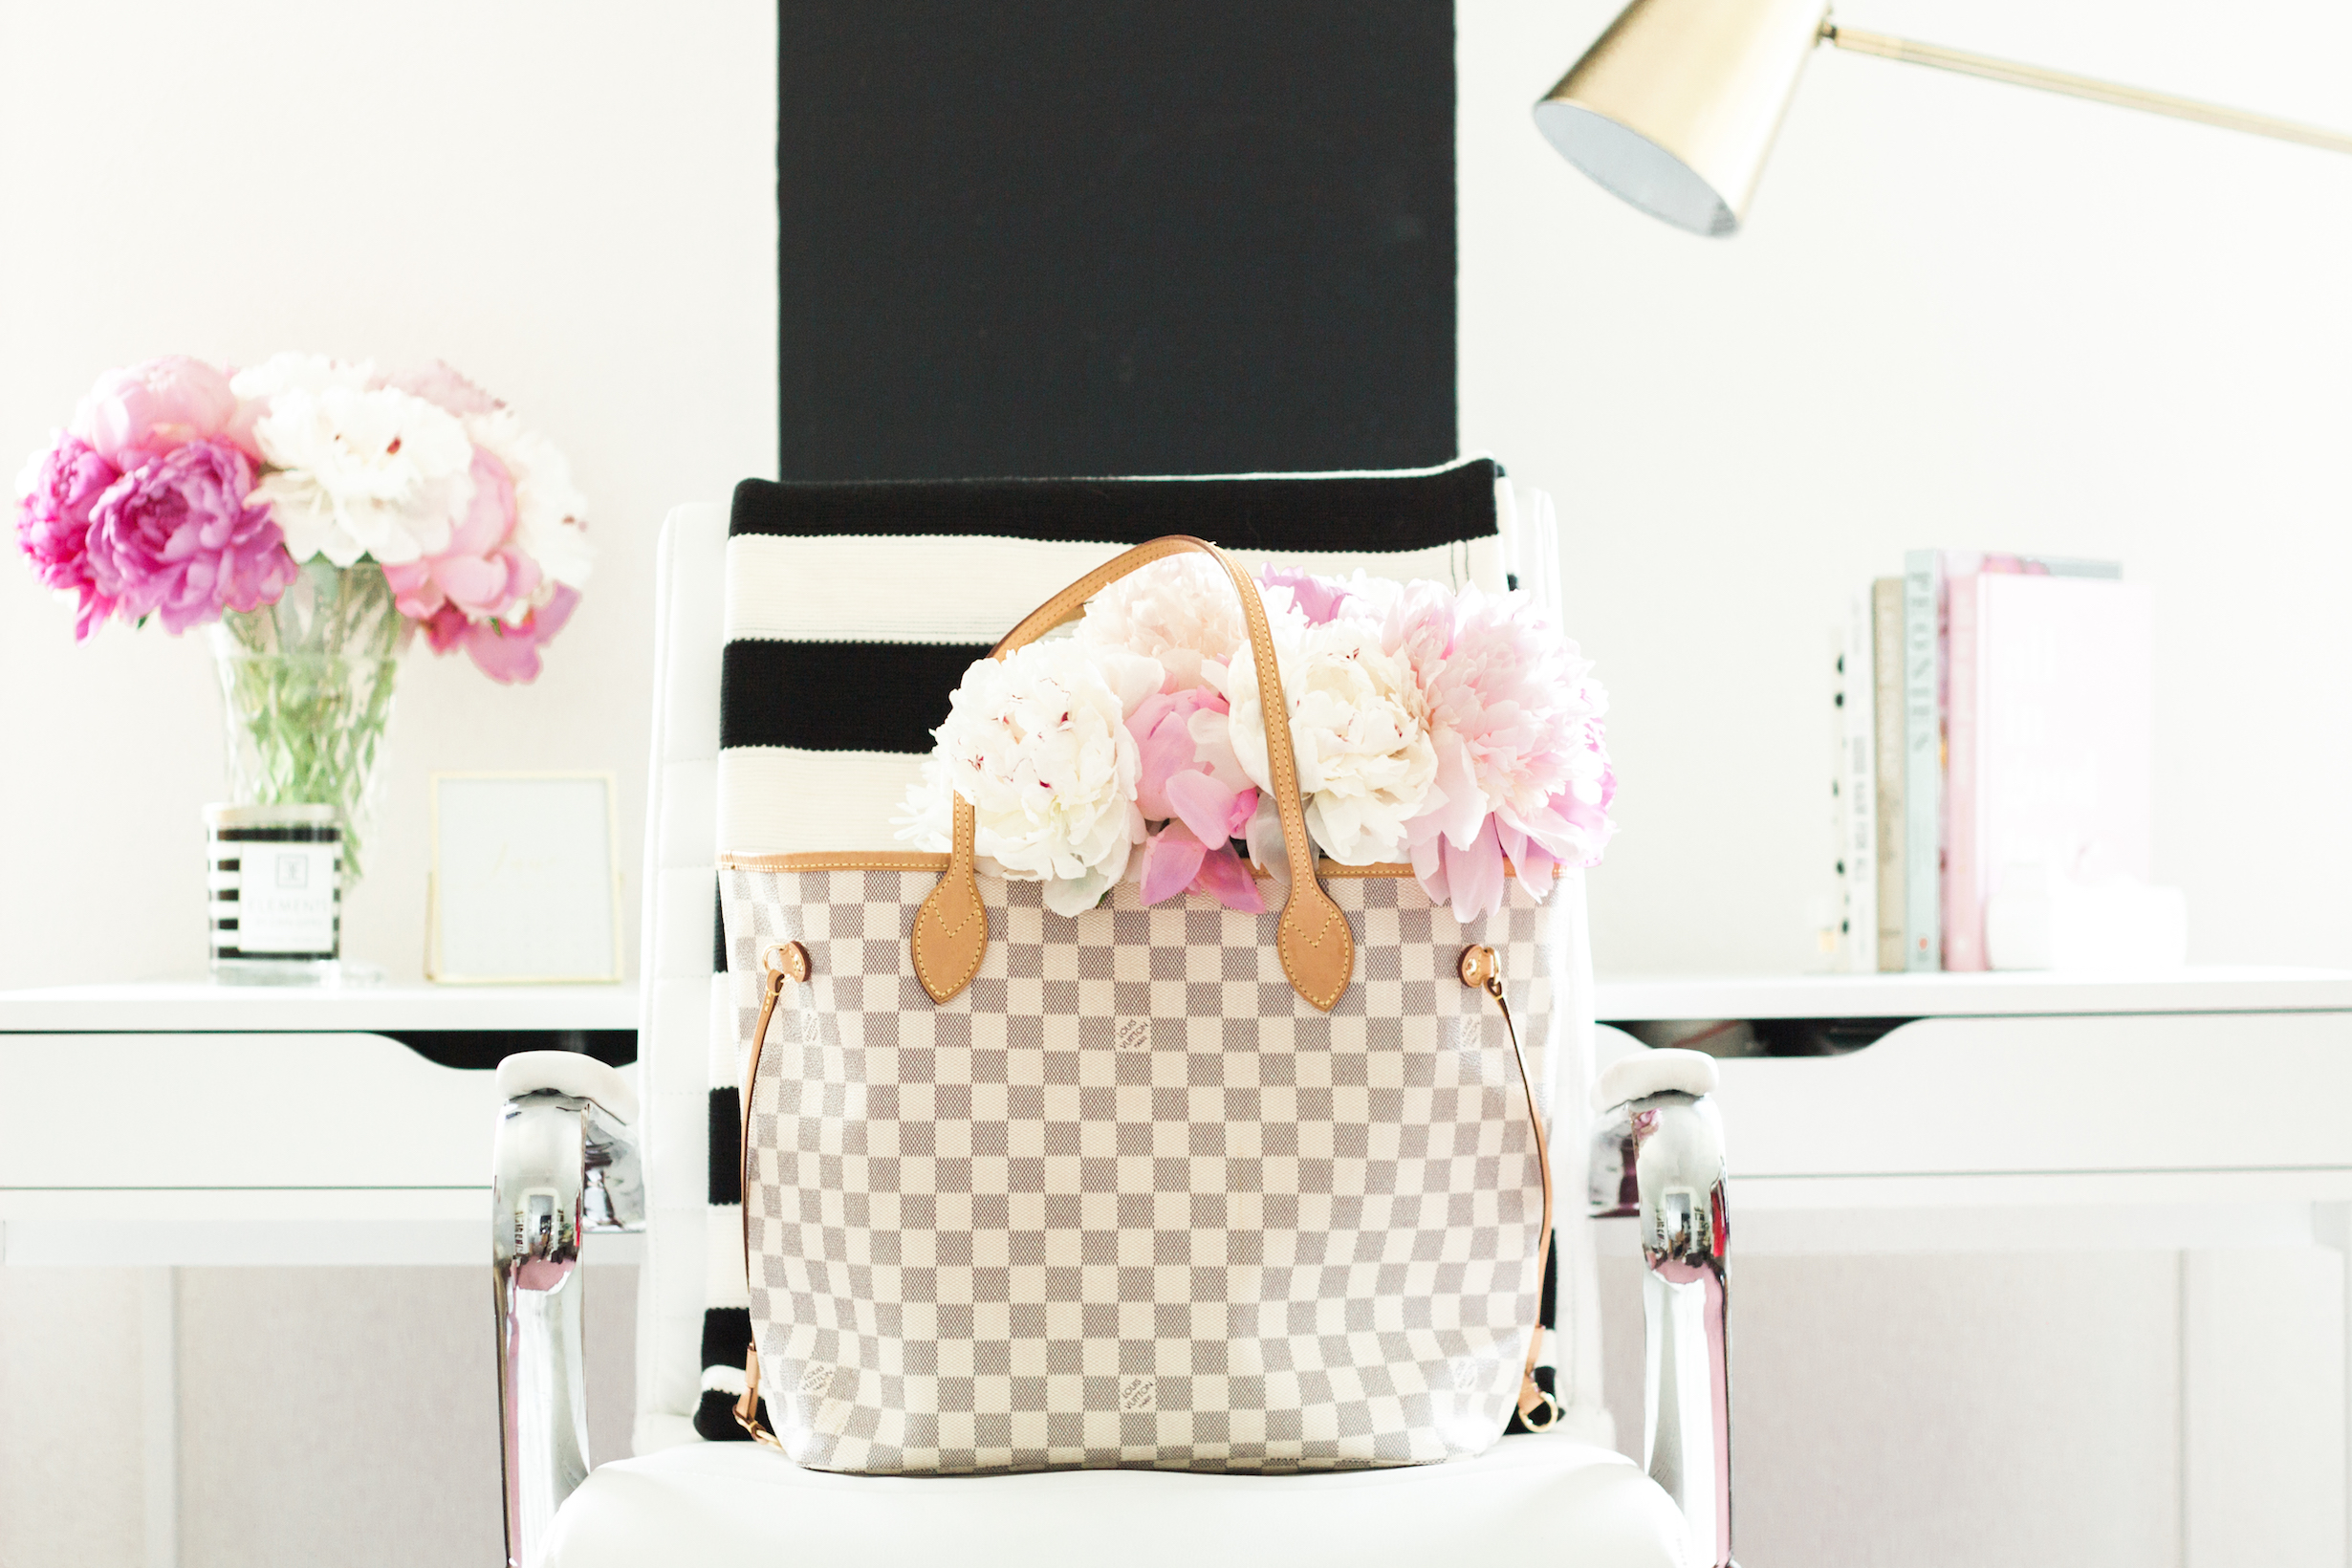 Louis Vuitton Neverfull Sizes Gm And Mm Topknots And Pearls